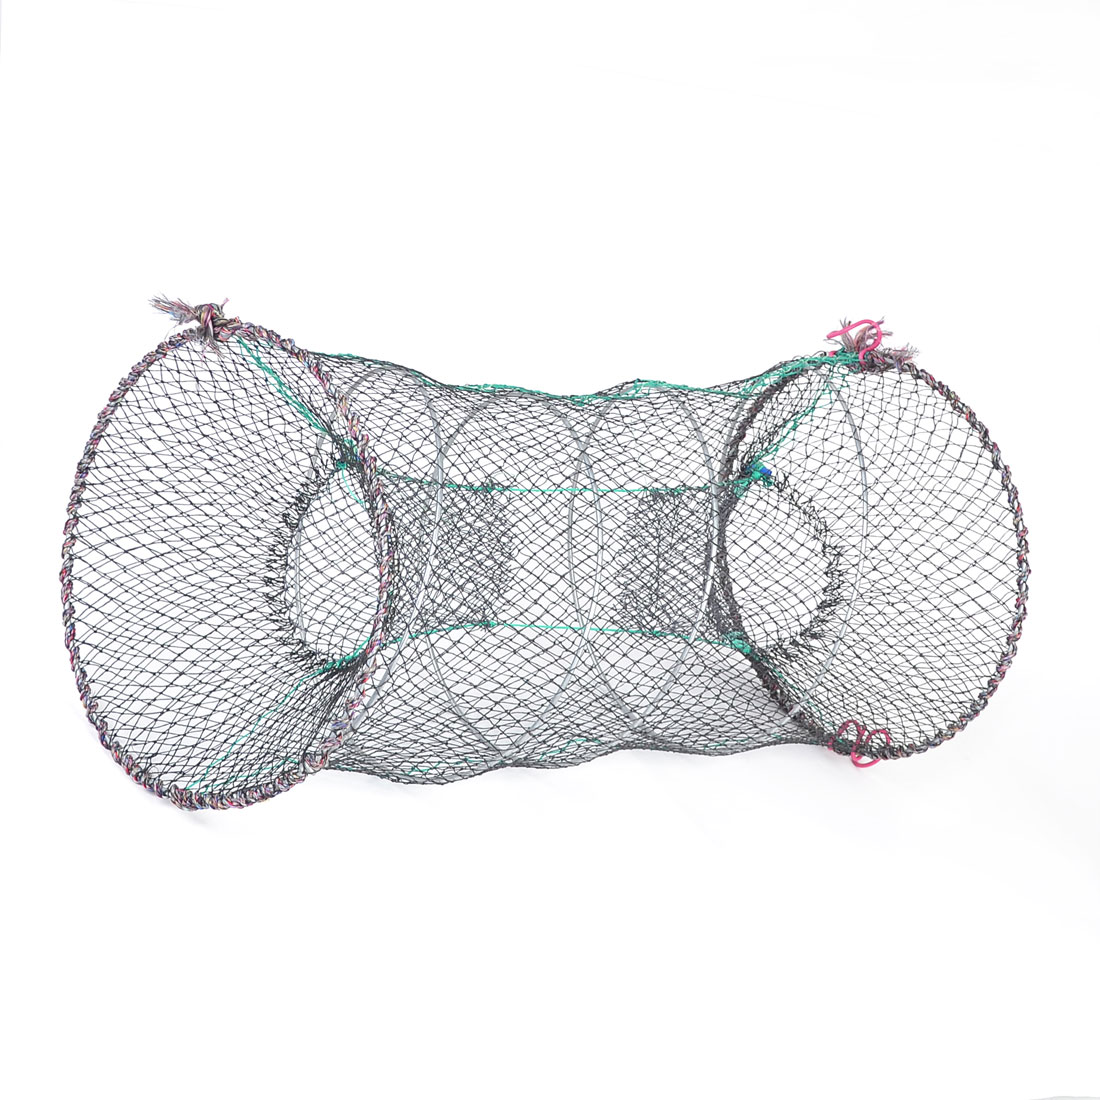 Black Dual Entrance 30x55cm Mesh Net for Frog Shrimp Crawfish Lobster